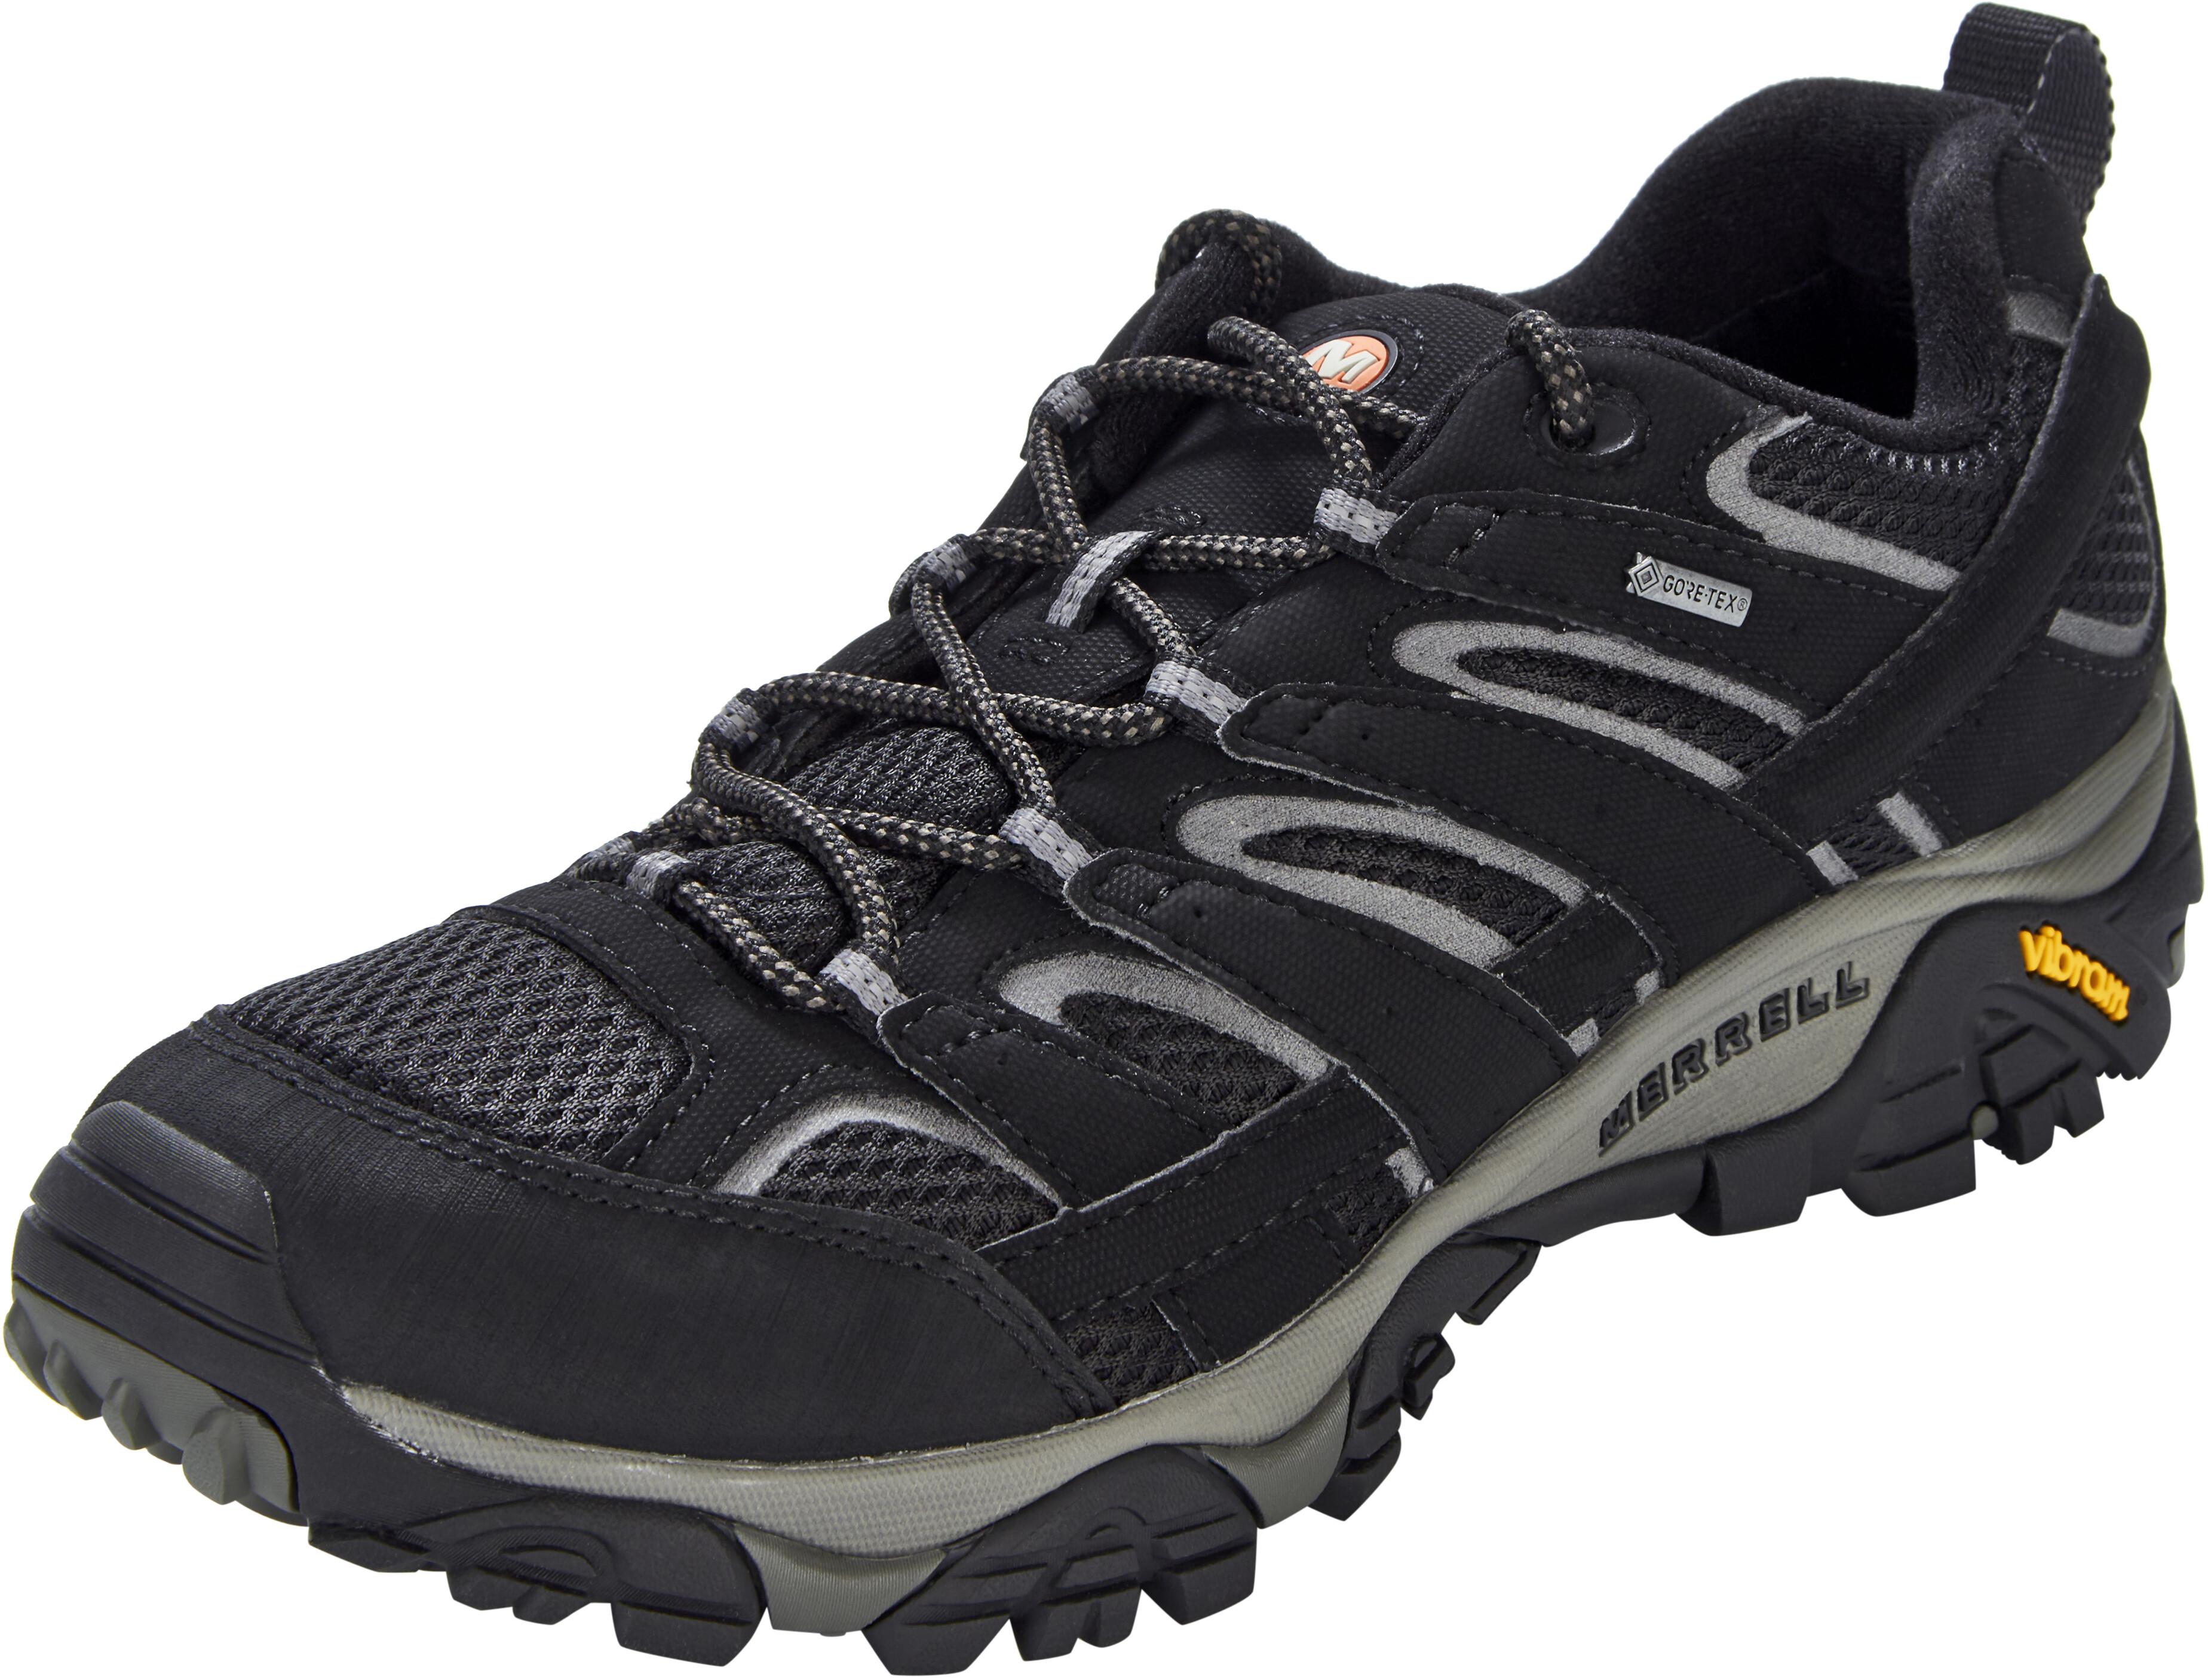 Merrell Moab 2 GTX Shoes Men black at Addnature.co.uk 0aeb348a1a